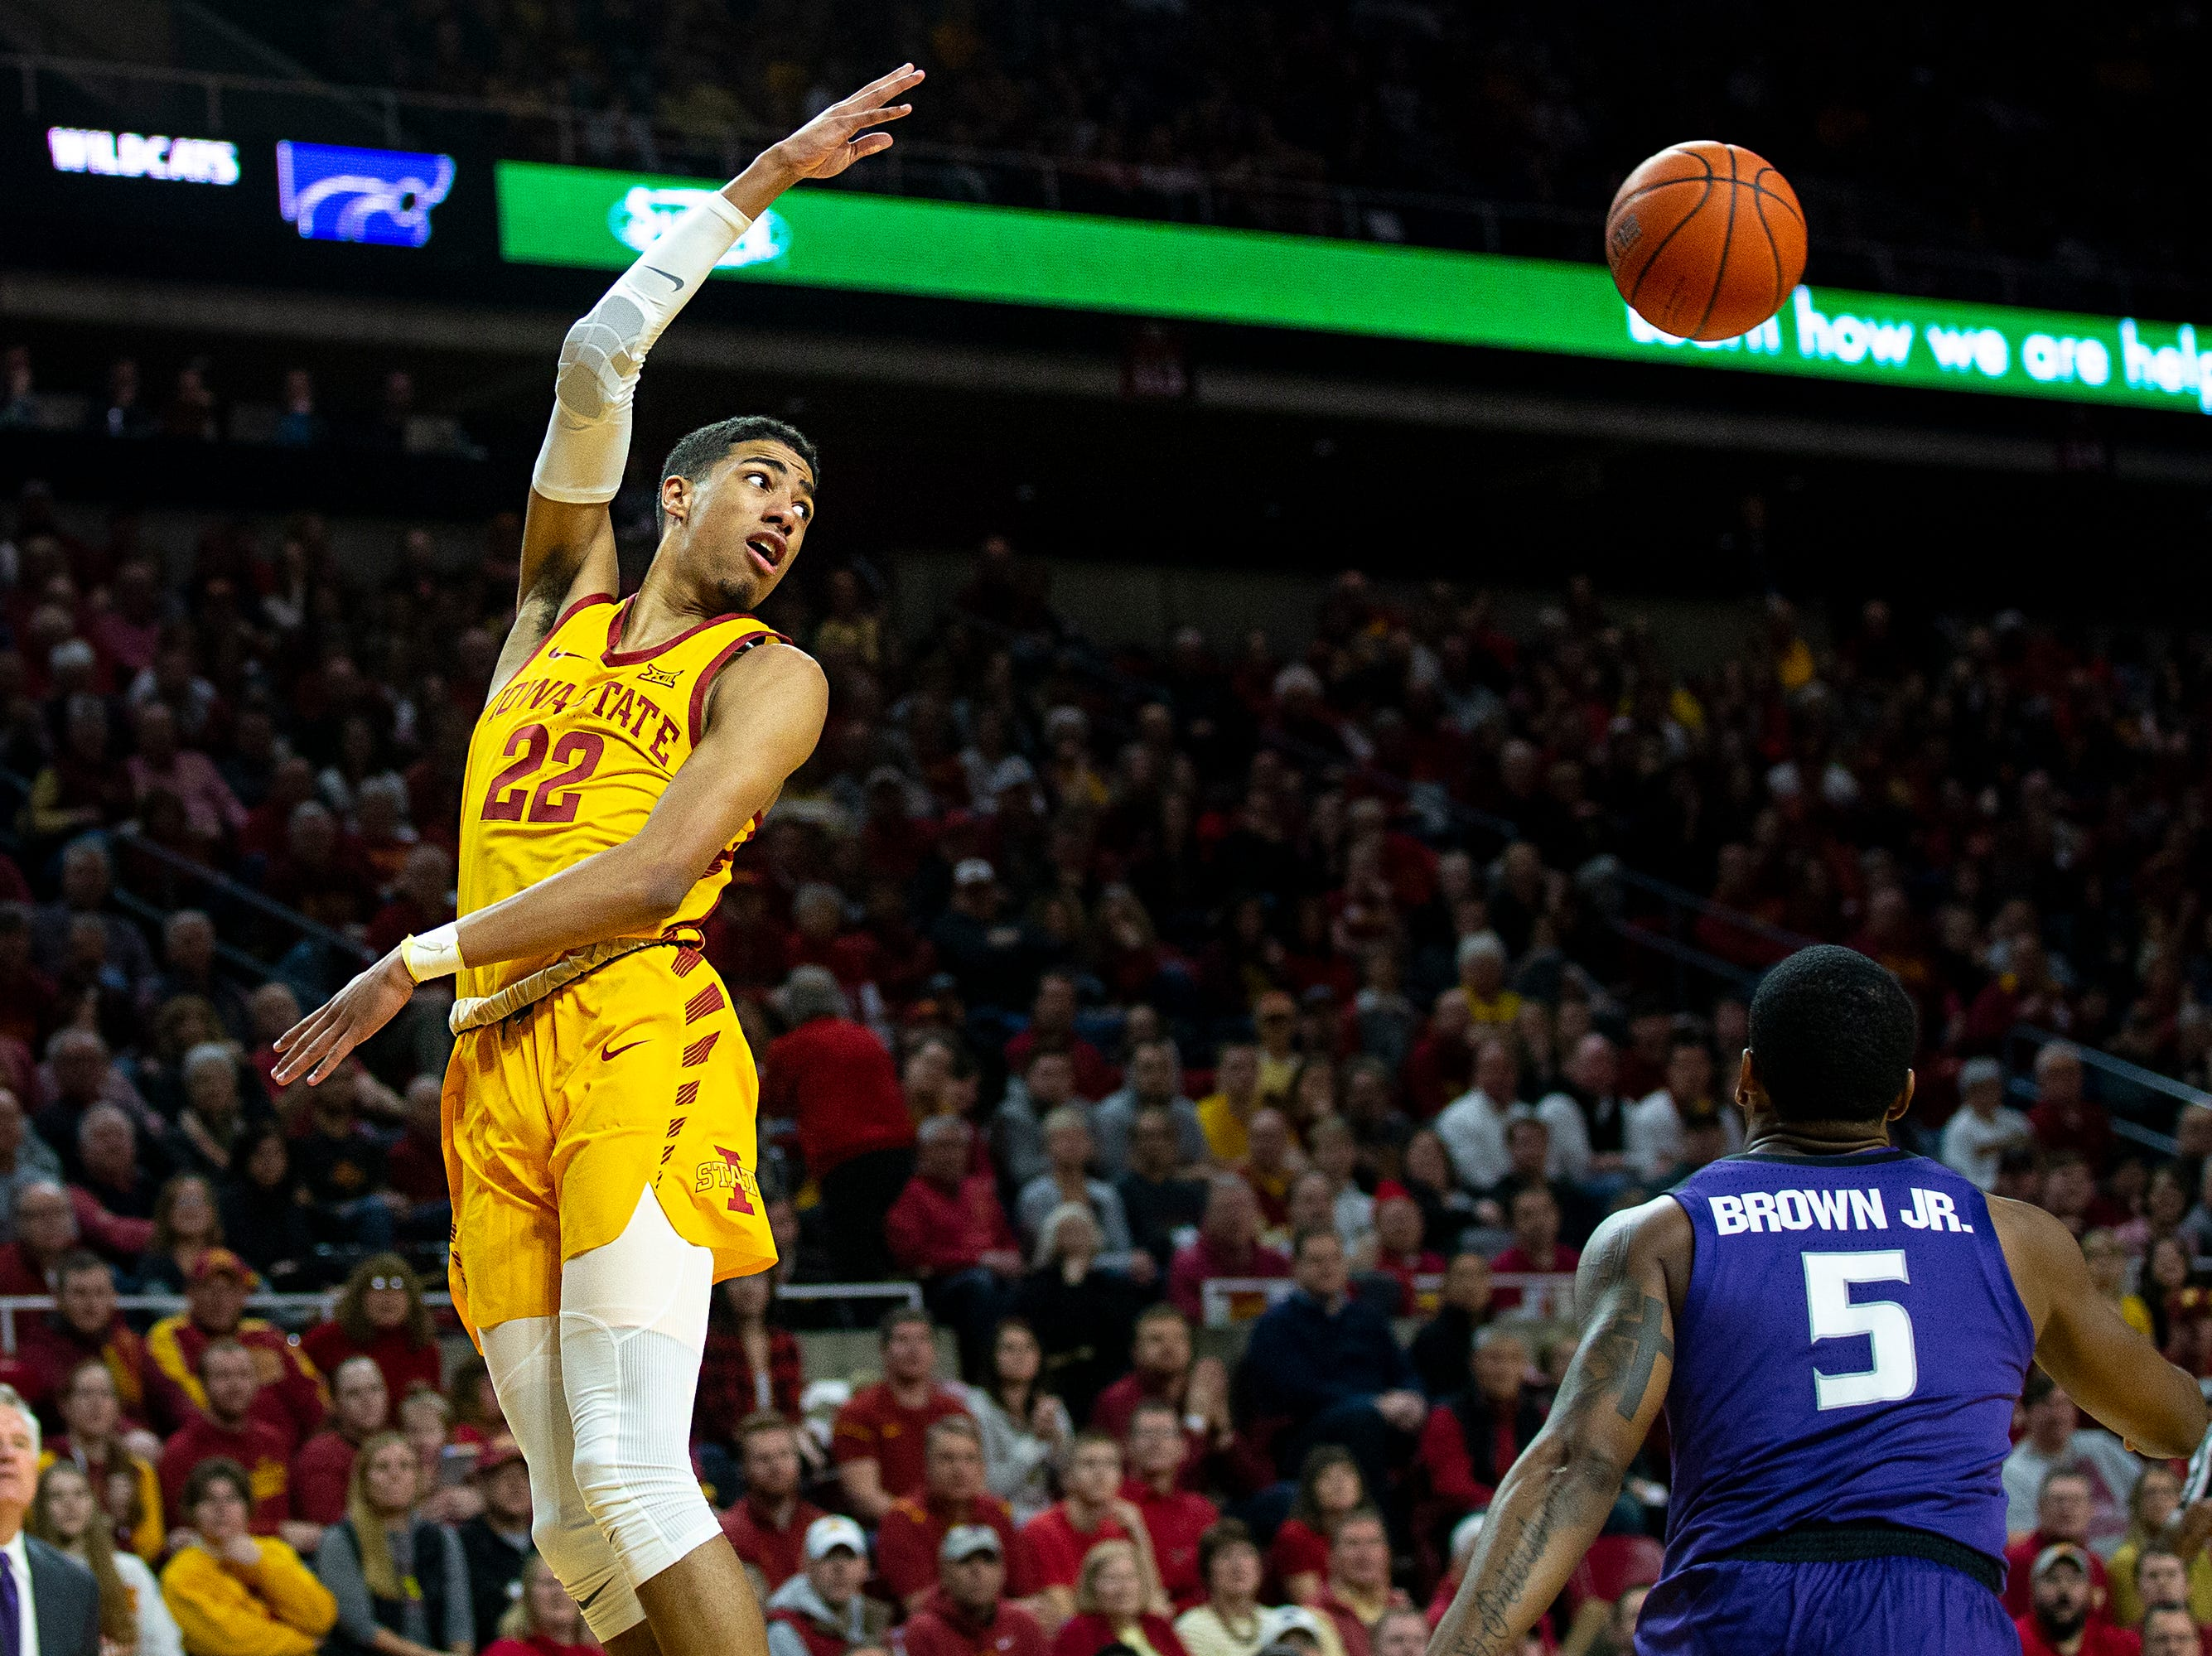 Iowa State's Tyrese Haliburton passes the ball during the Iowa State men's basketball game against Kansas State on Saturday, Jan. 12, 2019, in Hilton Coliseum. The Cyclones lost to KSU by one point, 58-57.